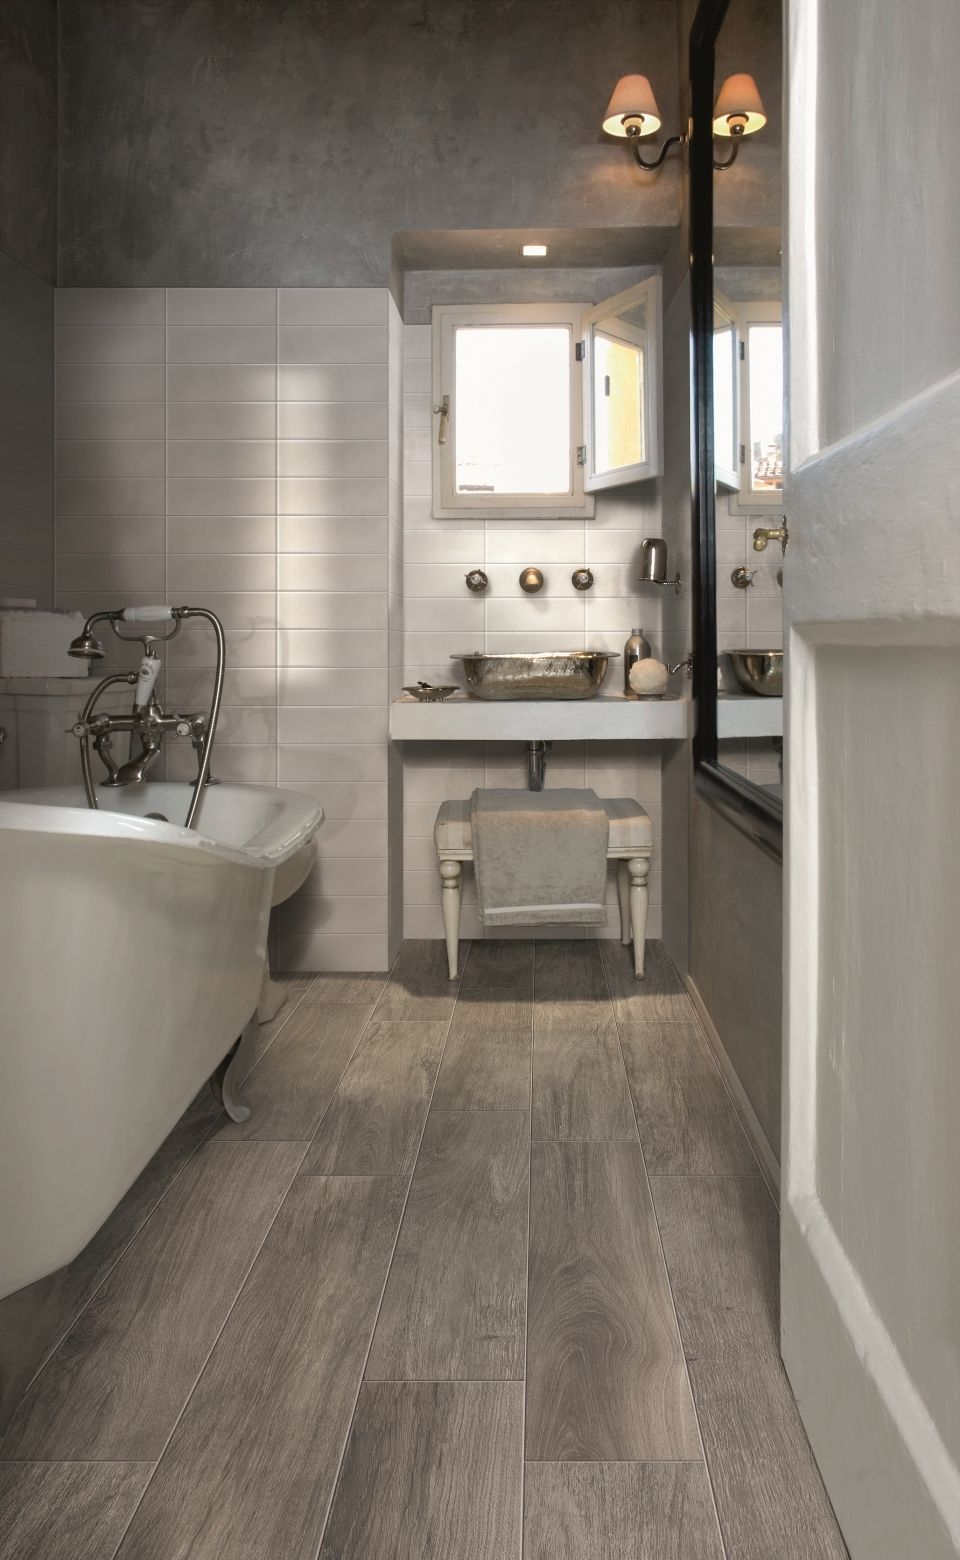 Lux Wood Look Porcelain Tile Architectural Ceramics